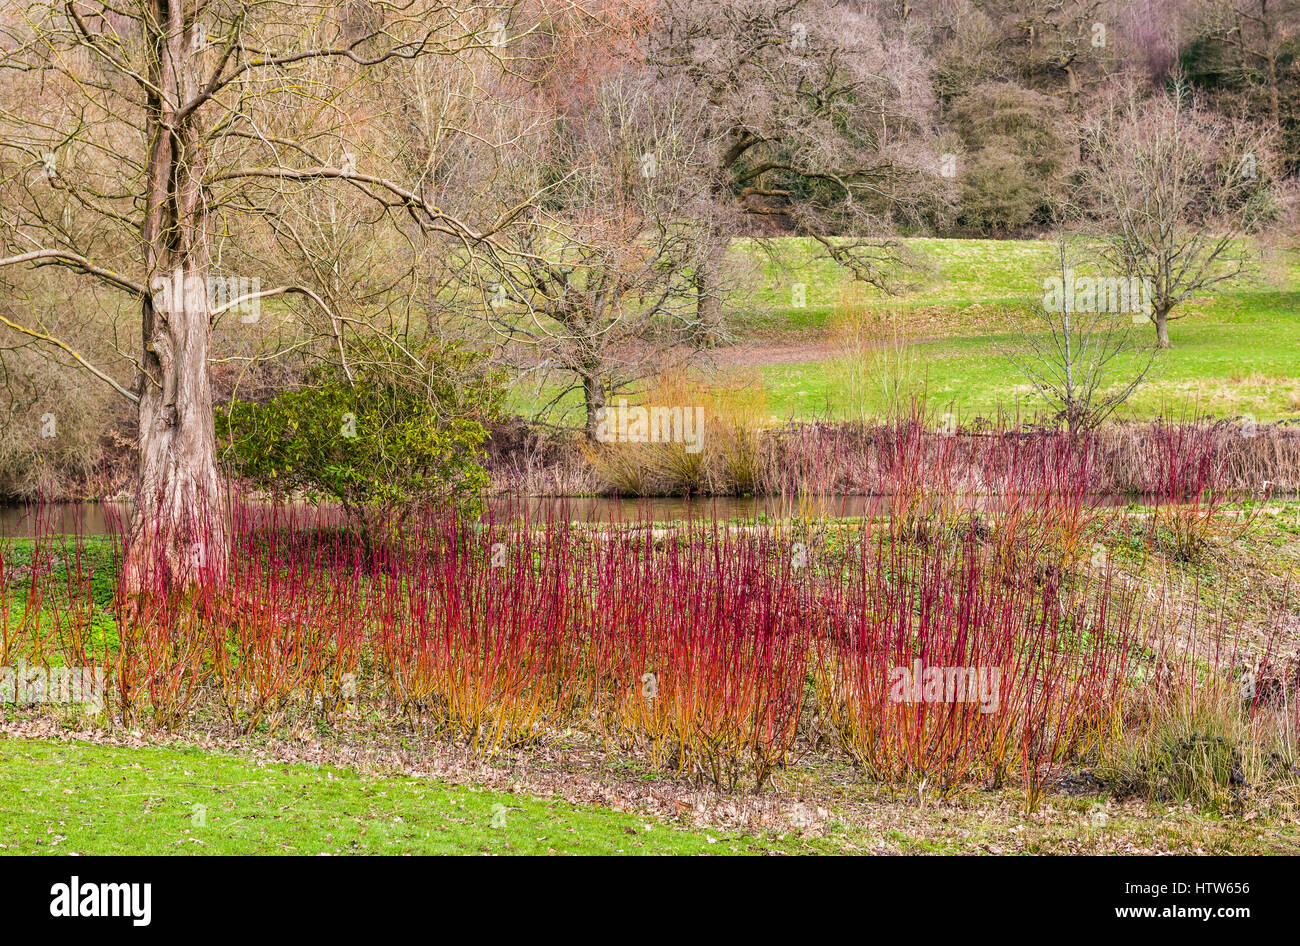 Landscape scene and red Cornus display at Chartwell, Kent, UK - Stock Image